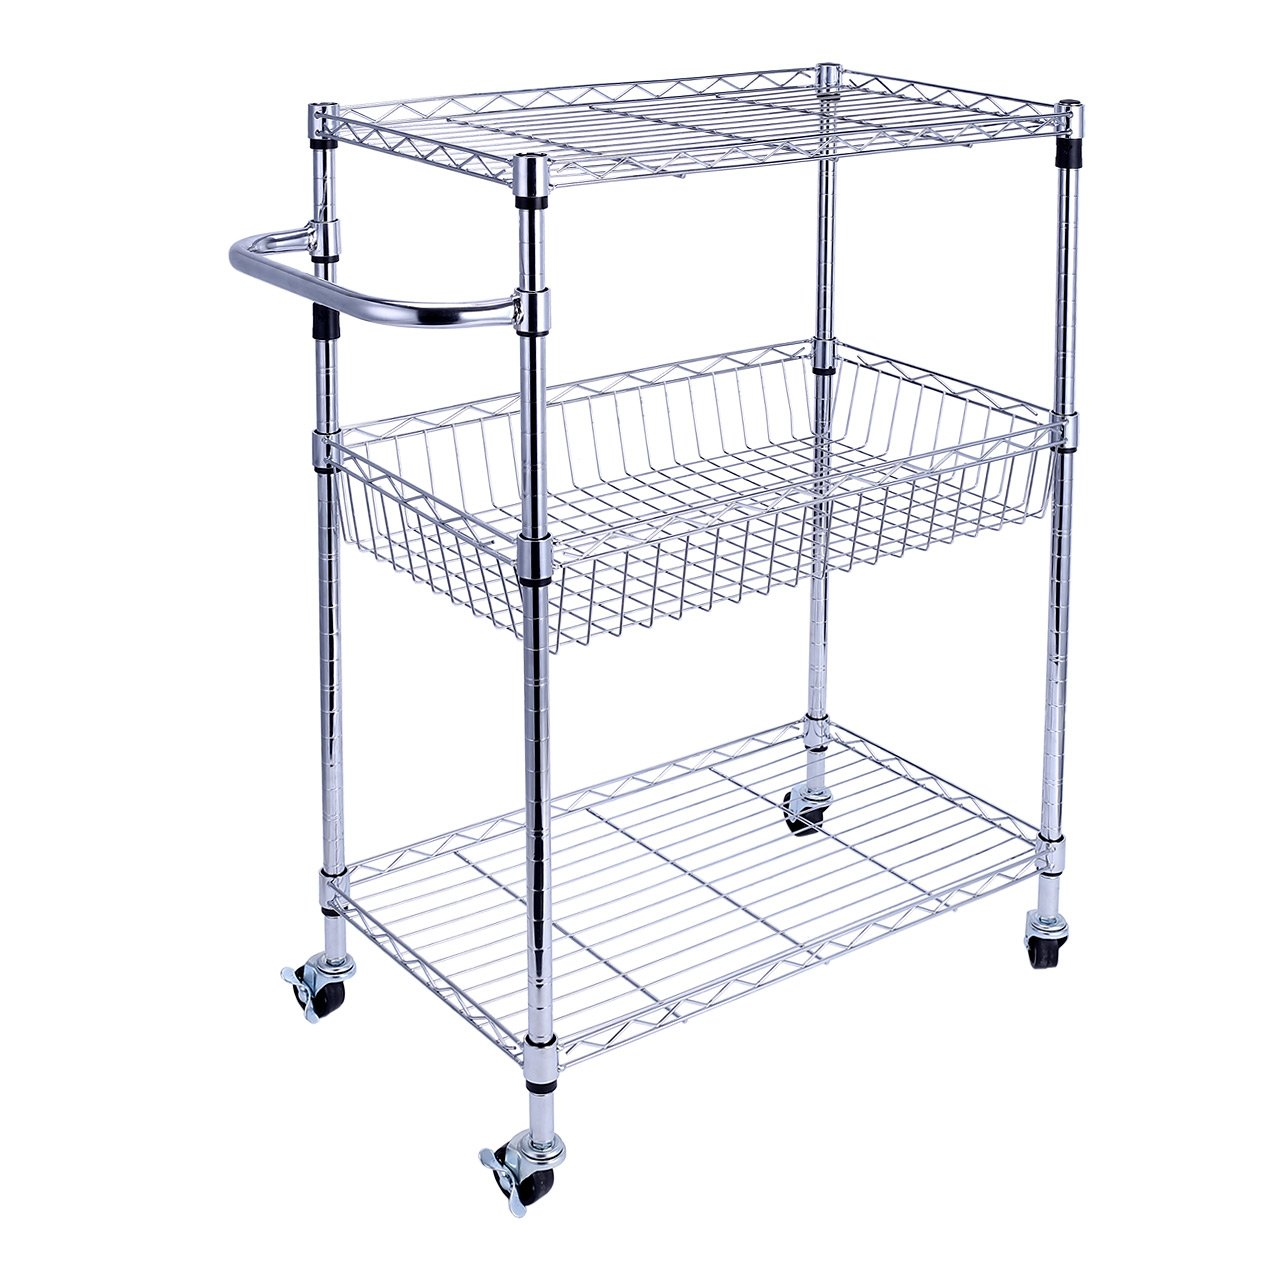 SortWise ® 3-Shelf Commercial Utility Wire Shelf Cart Storage Rack Basket Shelves Stand with Rolling wheels, Multi-Purpose for Kitchen Laundry Bathroom SaveOnMany